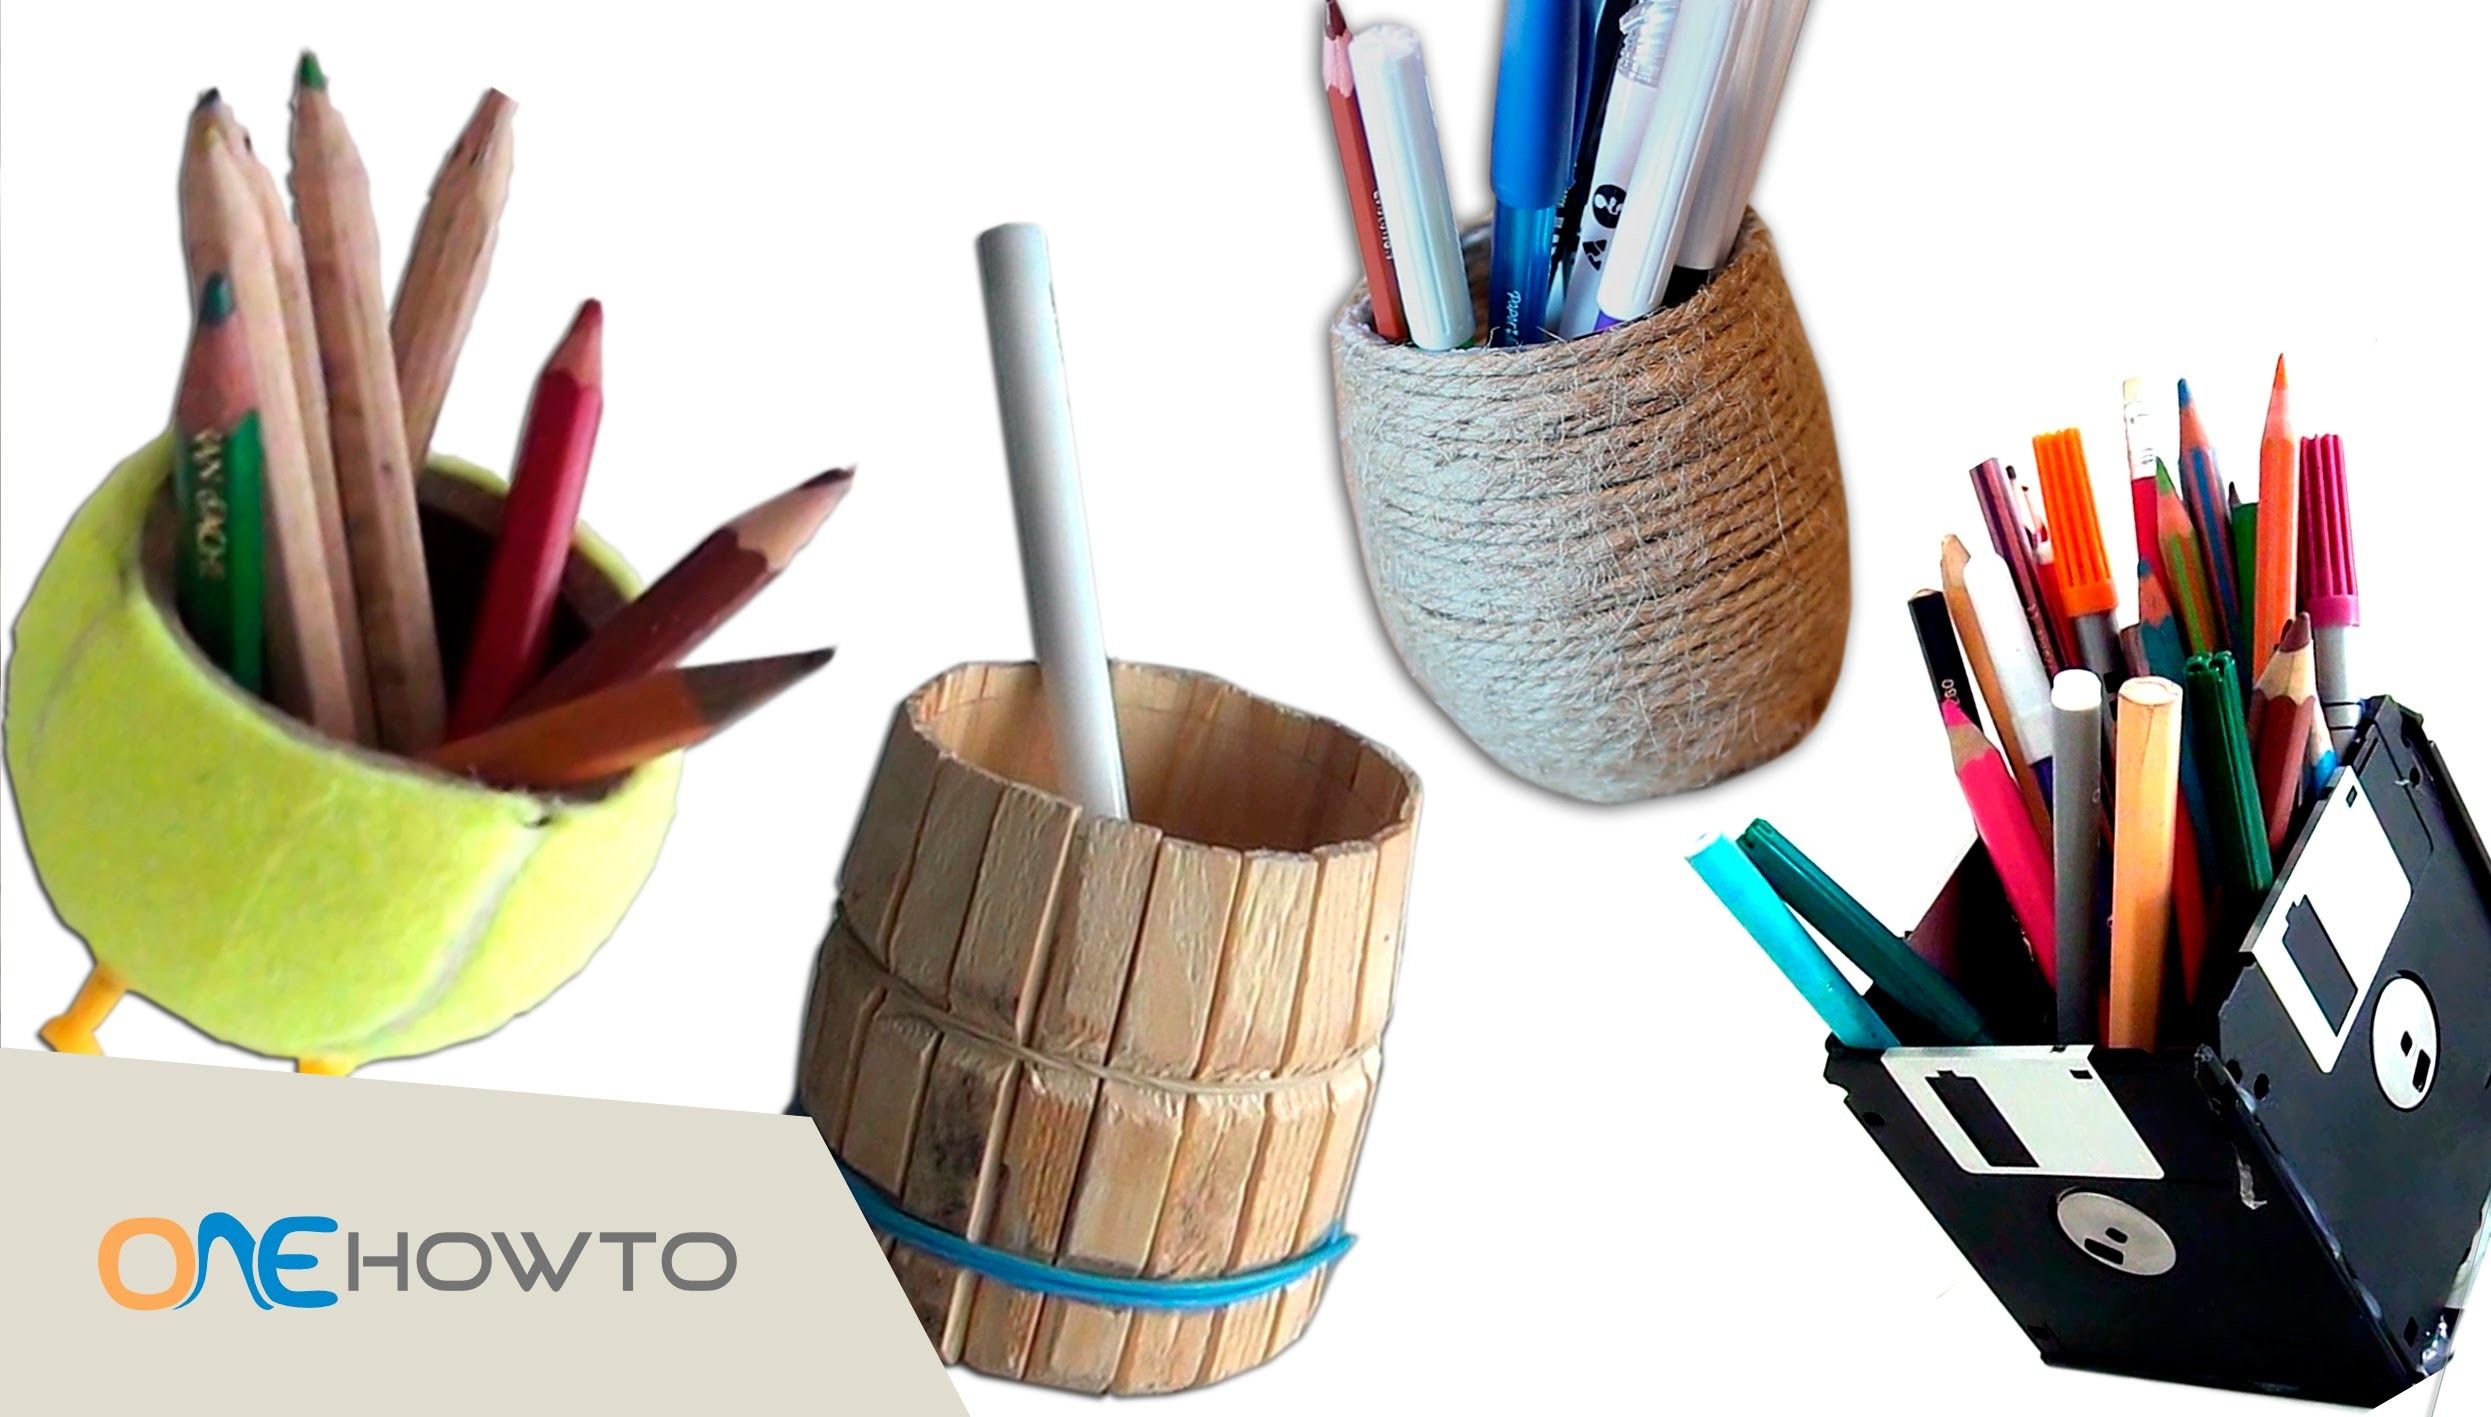 4 diy pencil holders crafts with waste material my for Craft ideas using waste materials